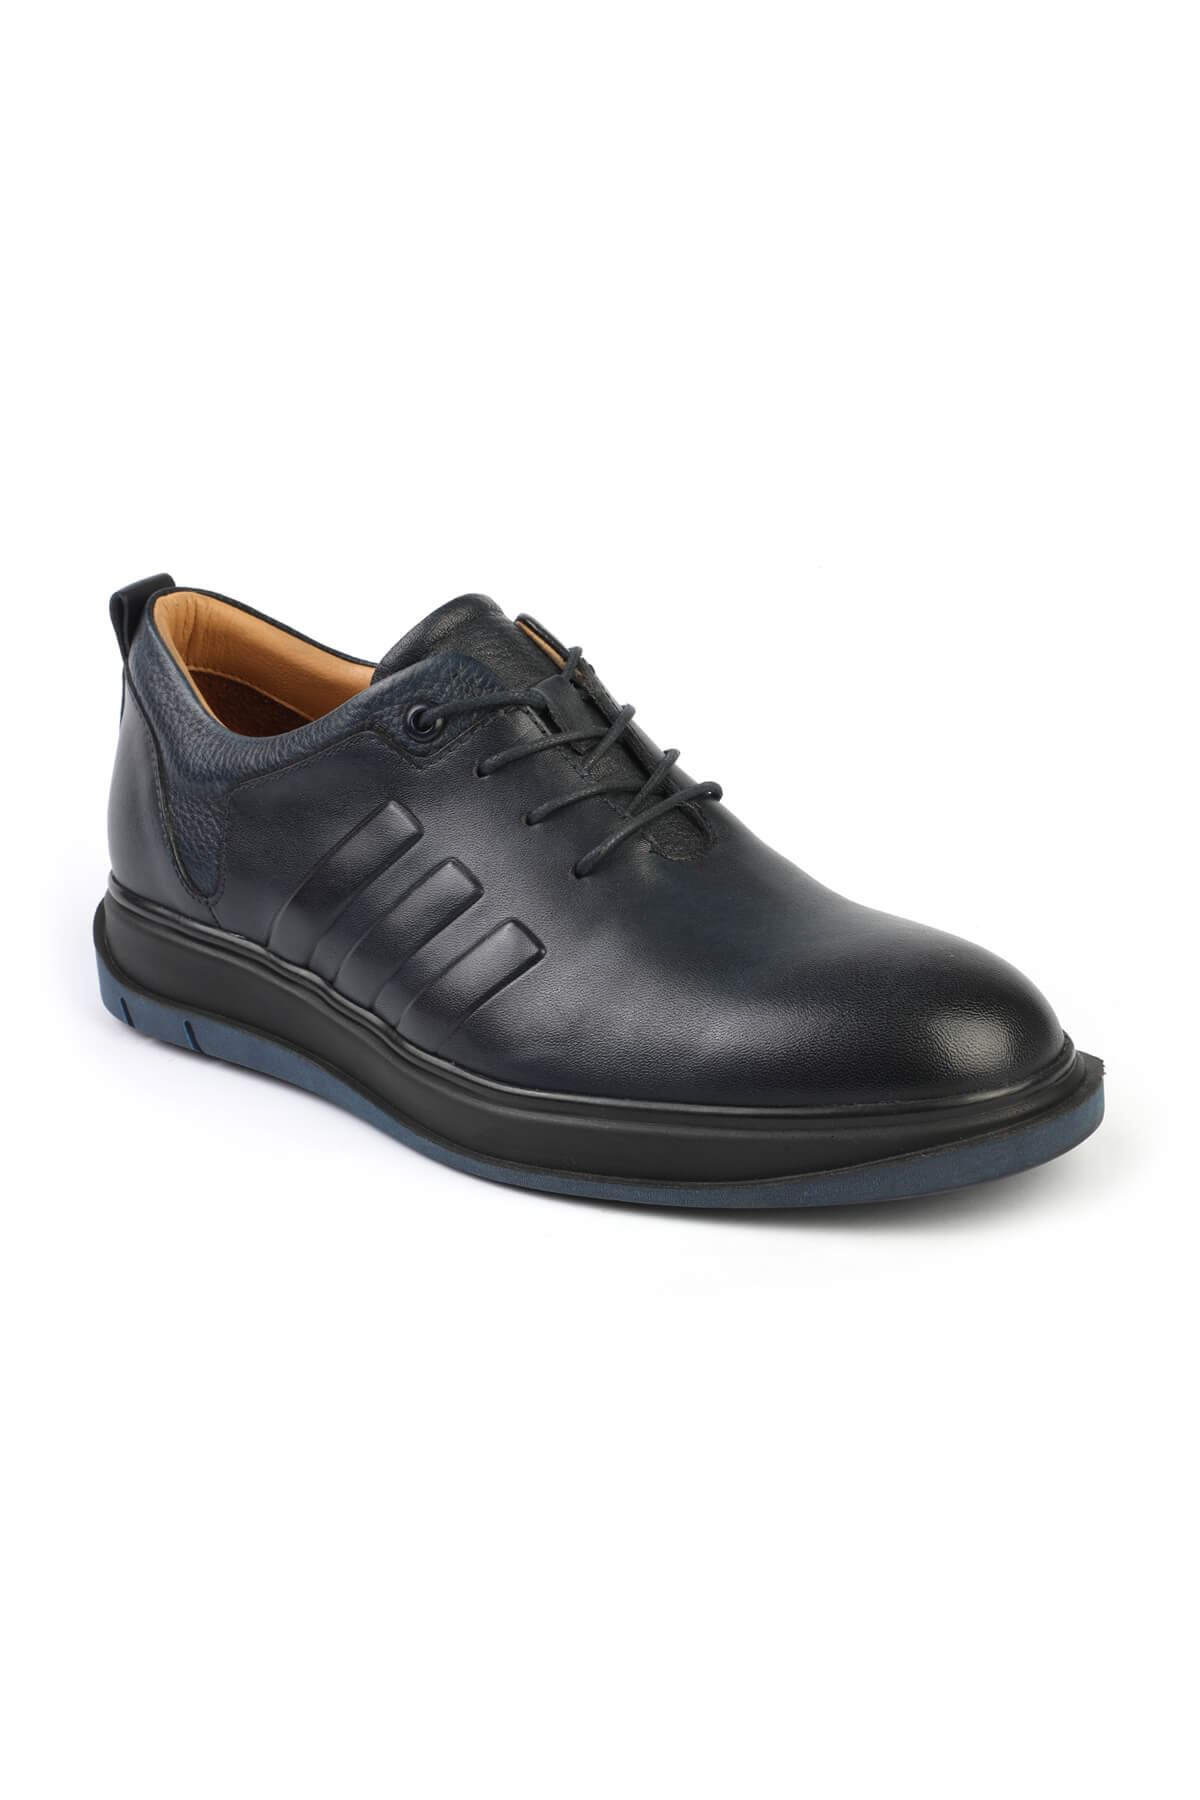 Libero 3163 Navy Blue Casual Shoes